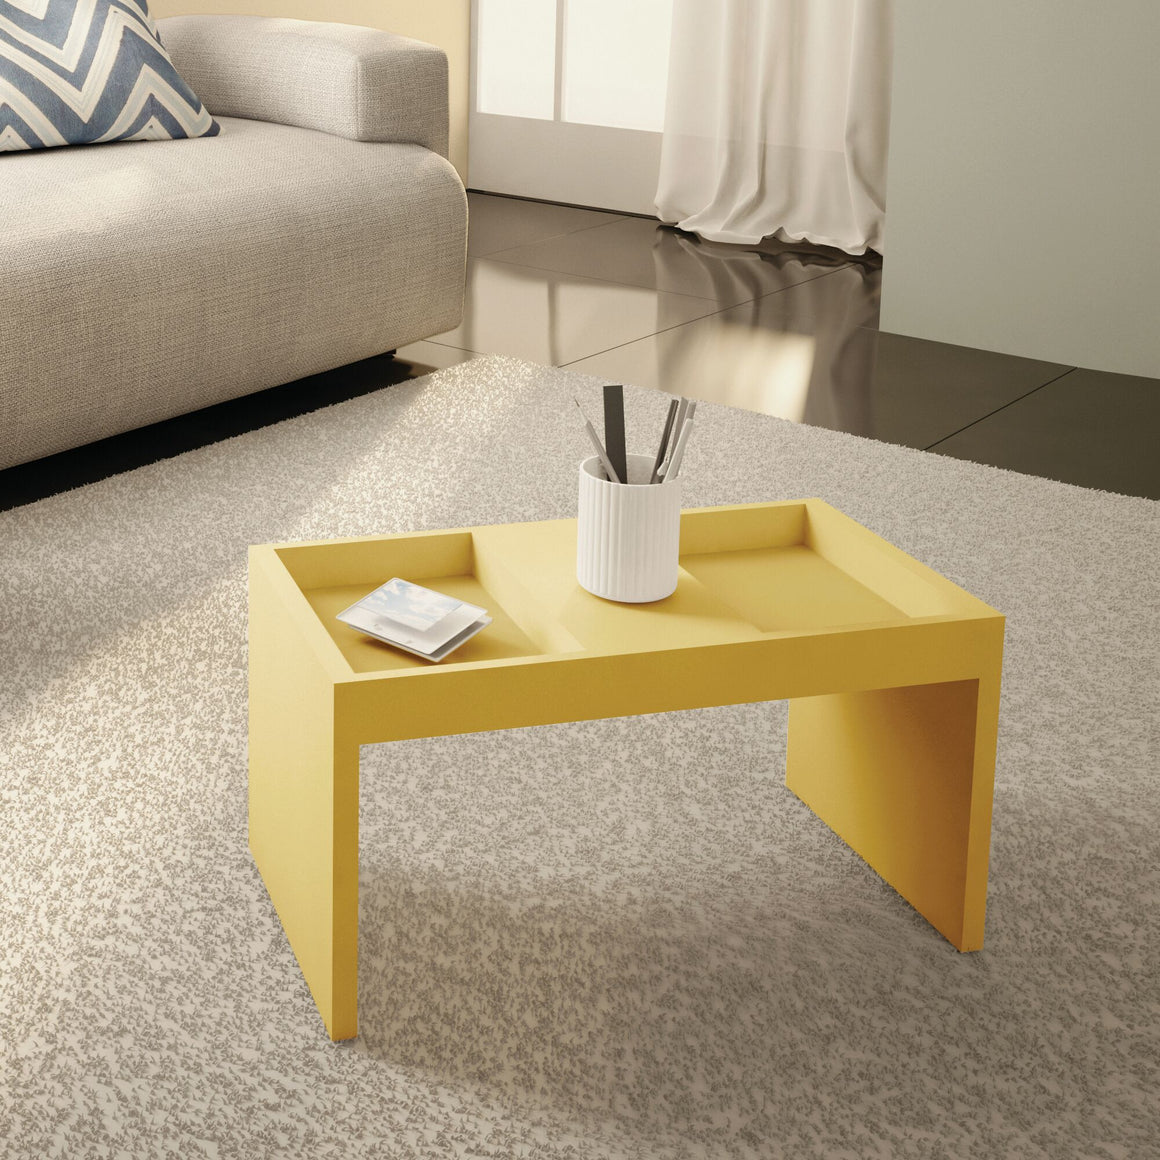 Marine Modern Coffee Table with Magazine Shelf in Yellow